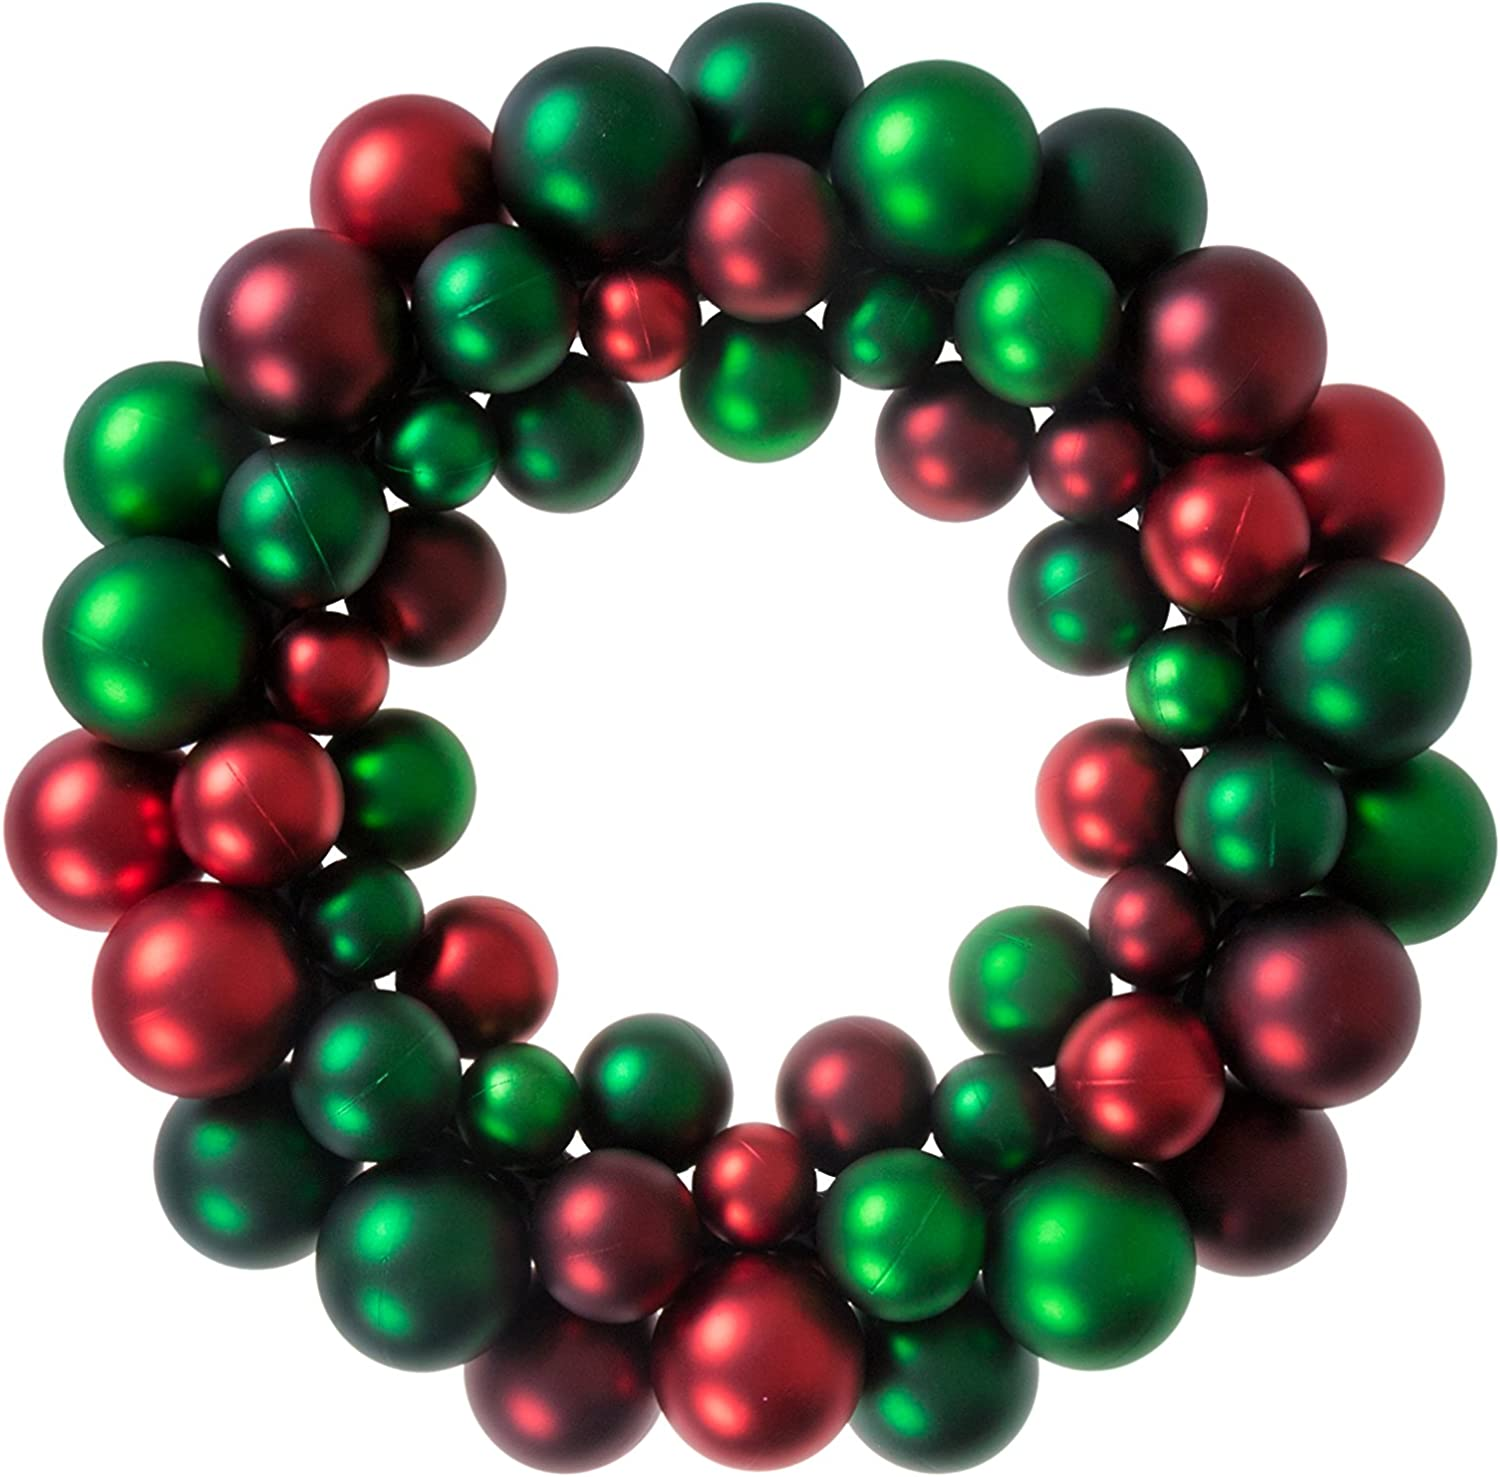 Clever Creations Christmas Ornament Wreath Bright Red & Green | Festive Holiday Décor | Classic Theme | Lightweight Shatter Resistant | Great for Indoor/Outdoor Use | 13.5